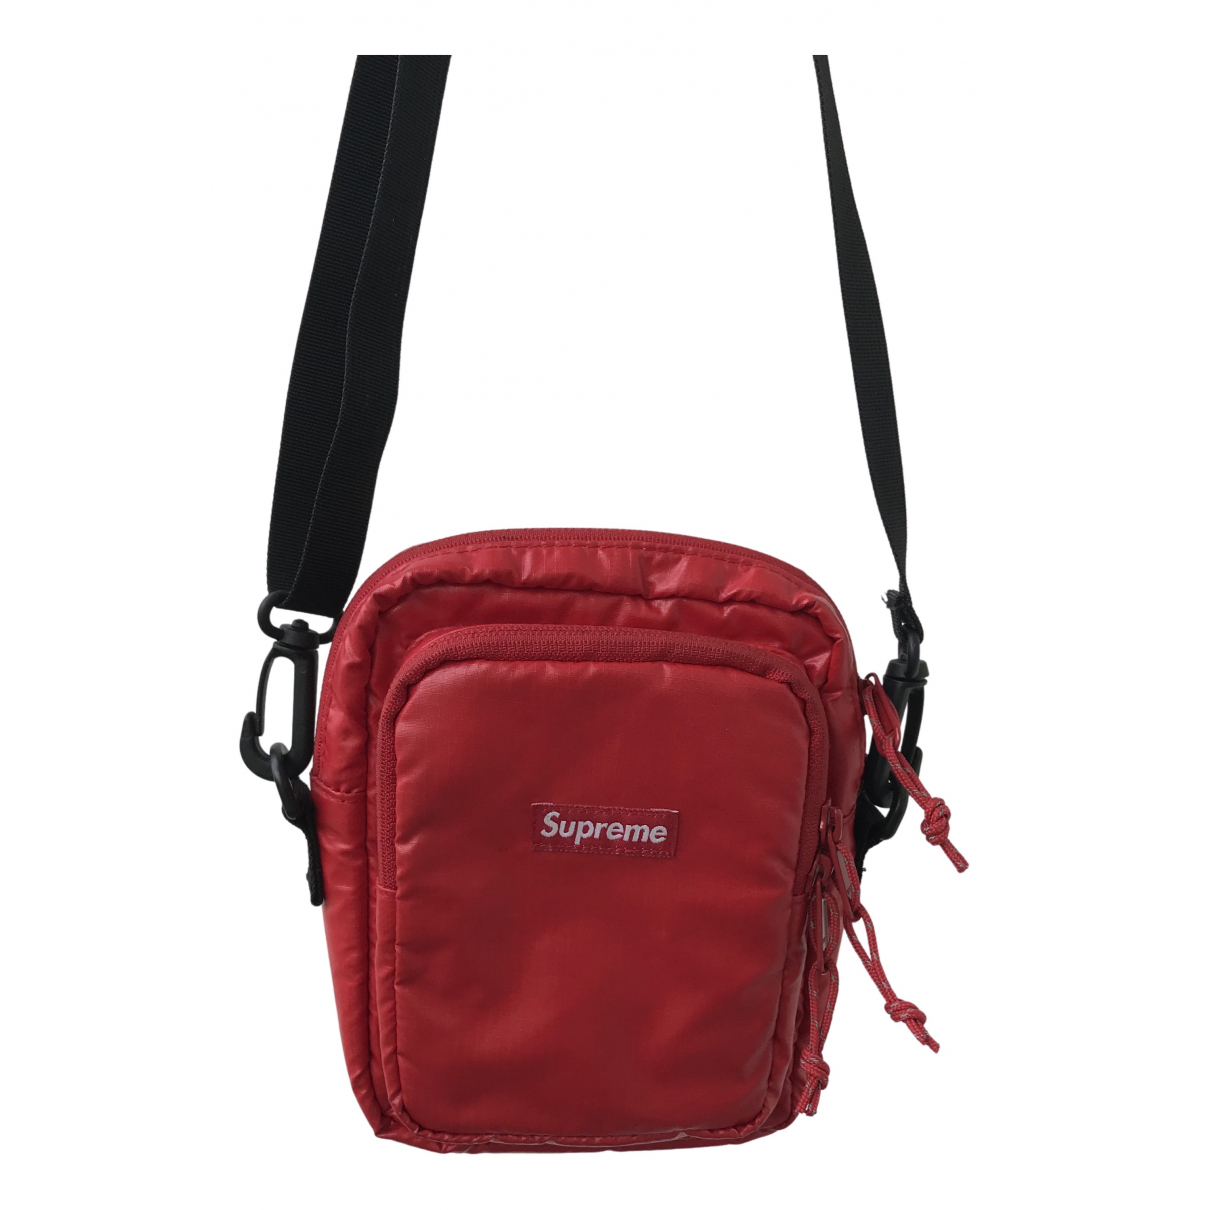 Supreme - Petite maroquinerie   pour homme - rouge